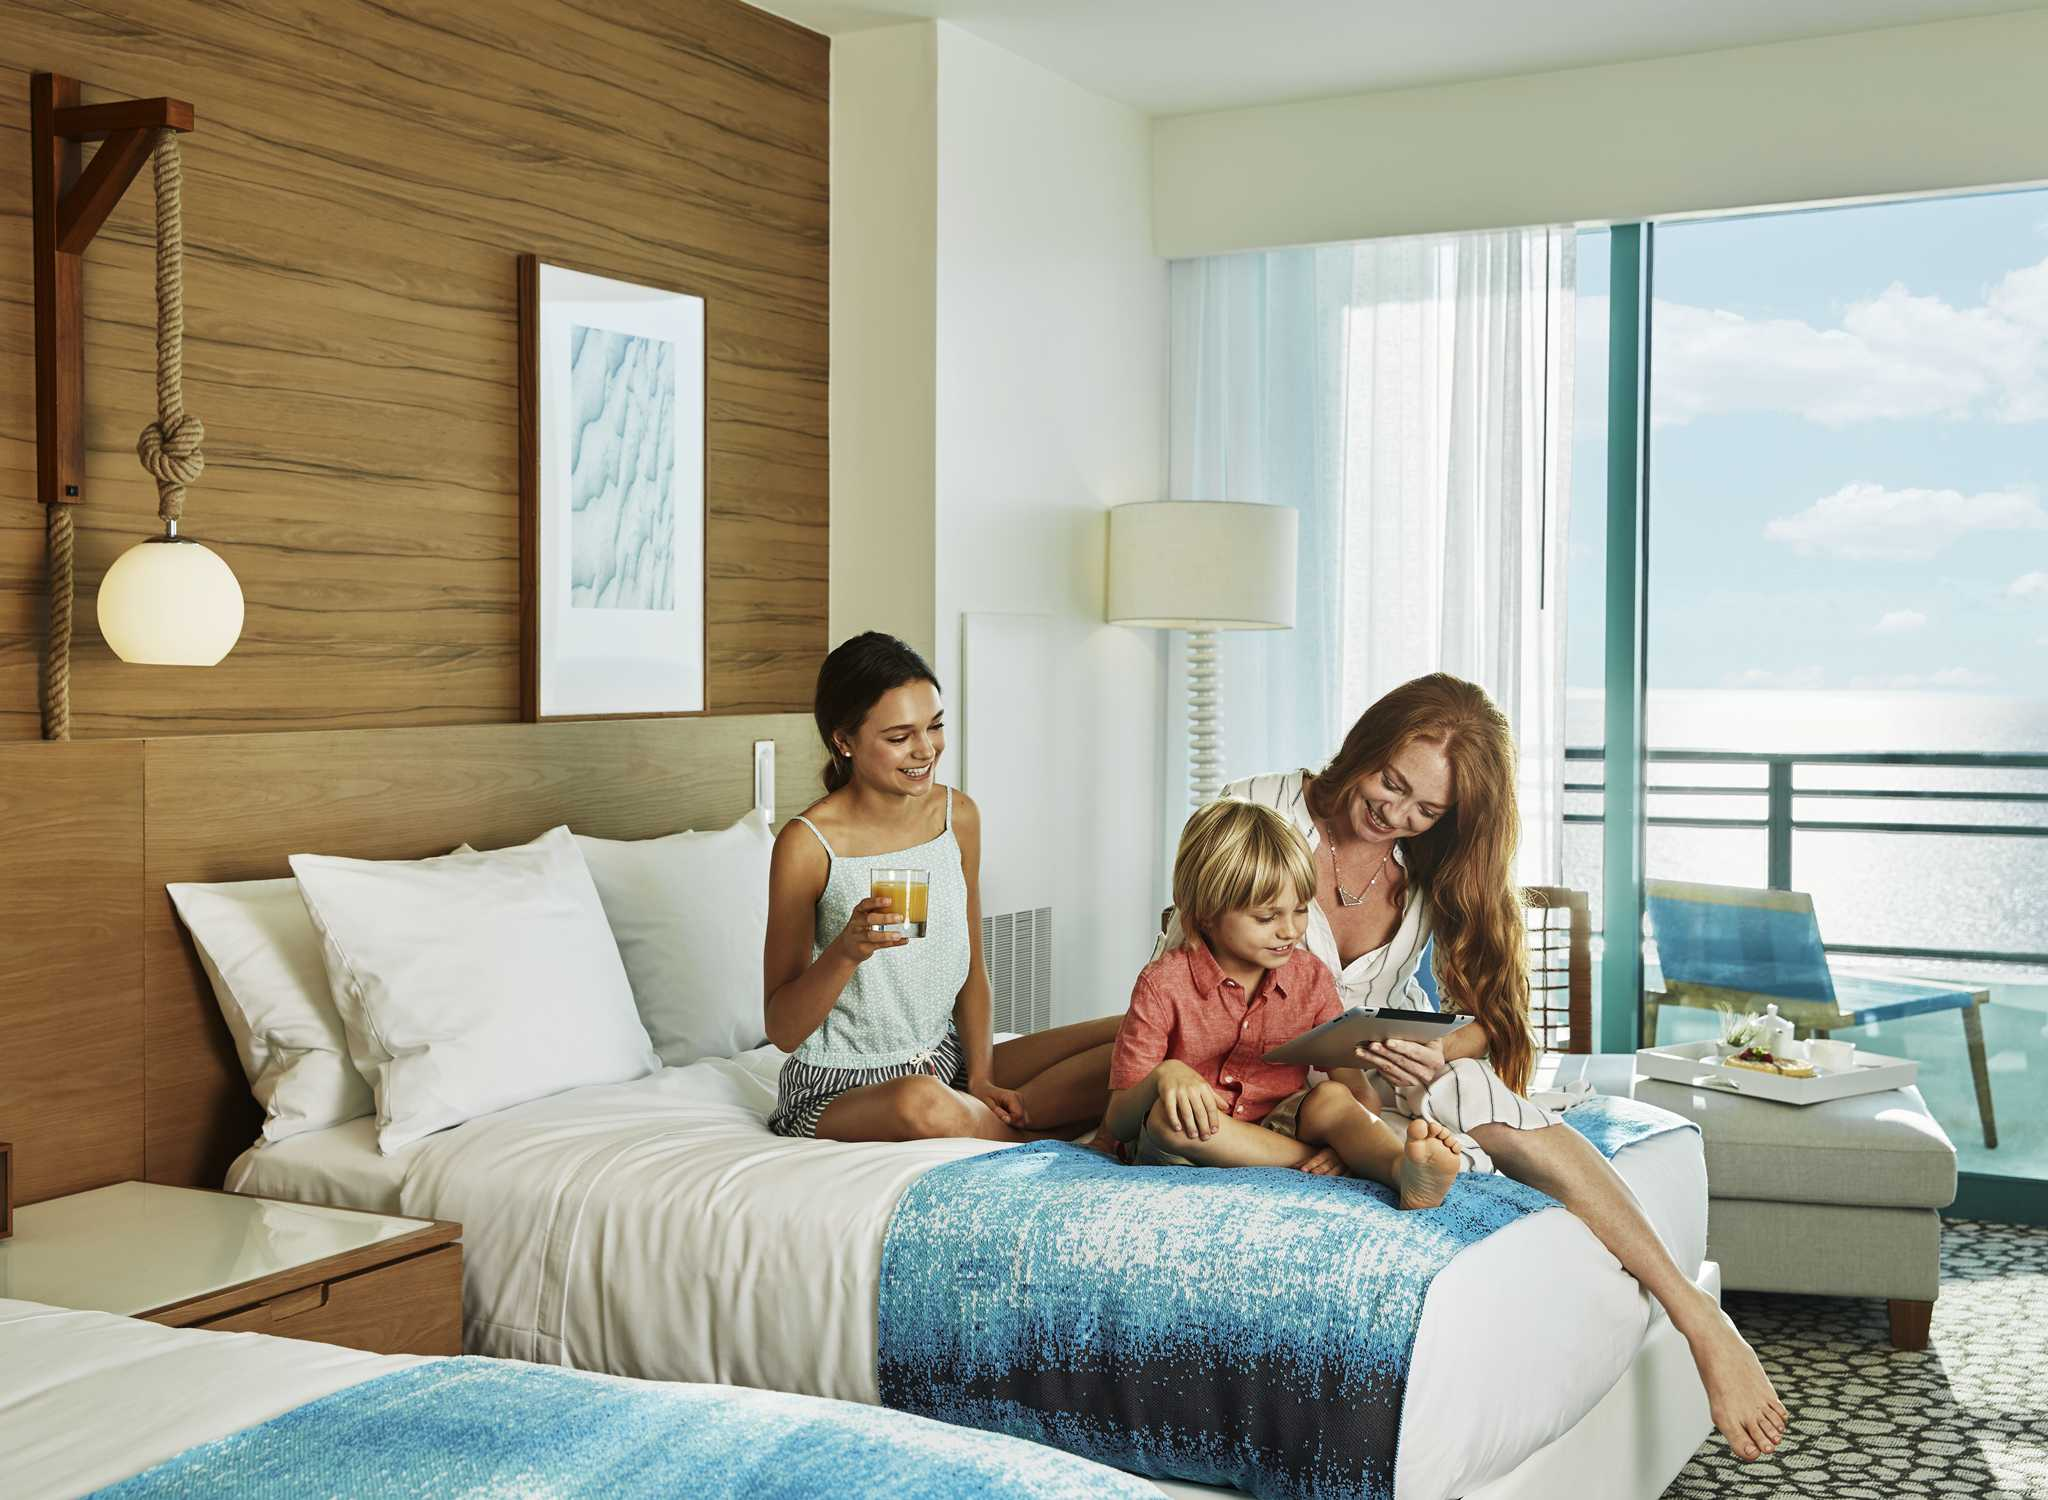 The diplomat beach resort hollywood curio collection by hilton hotel